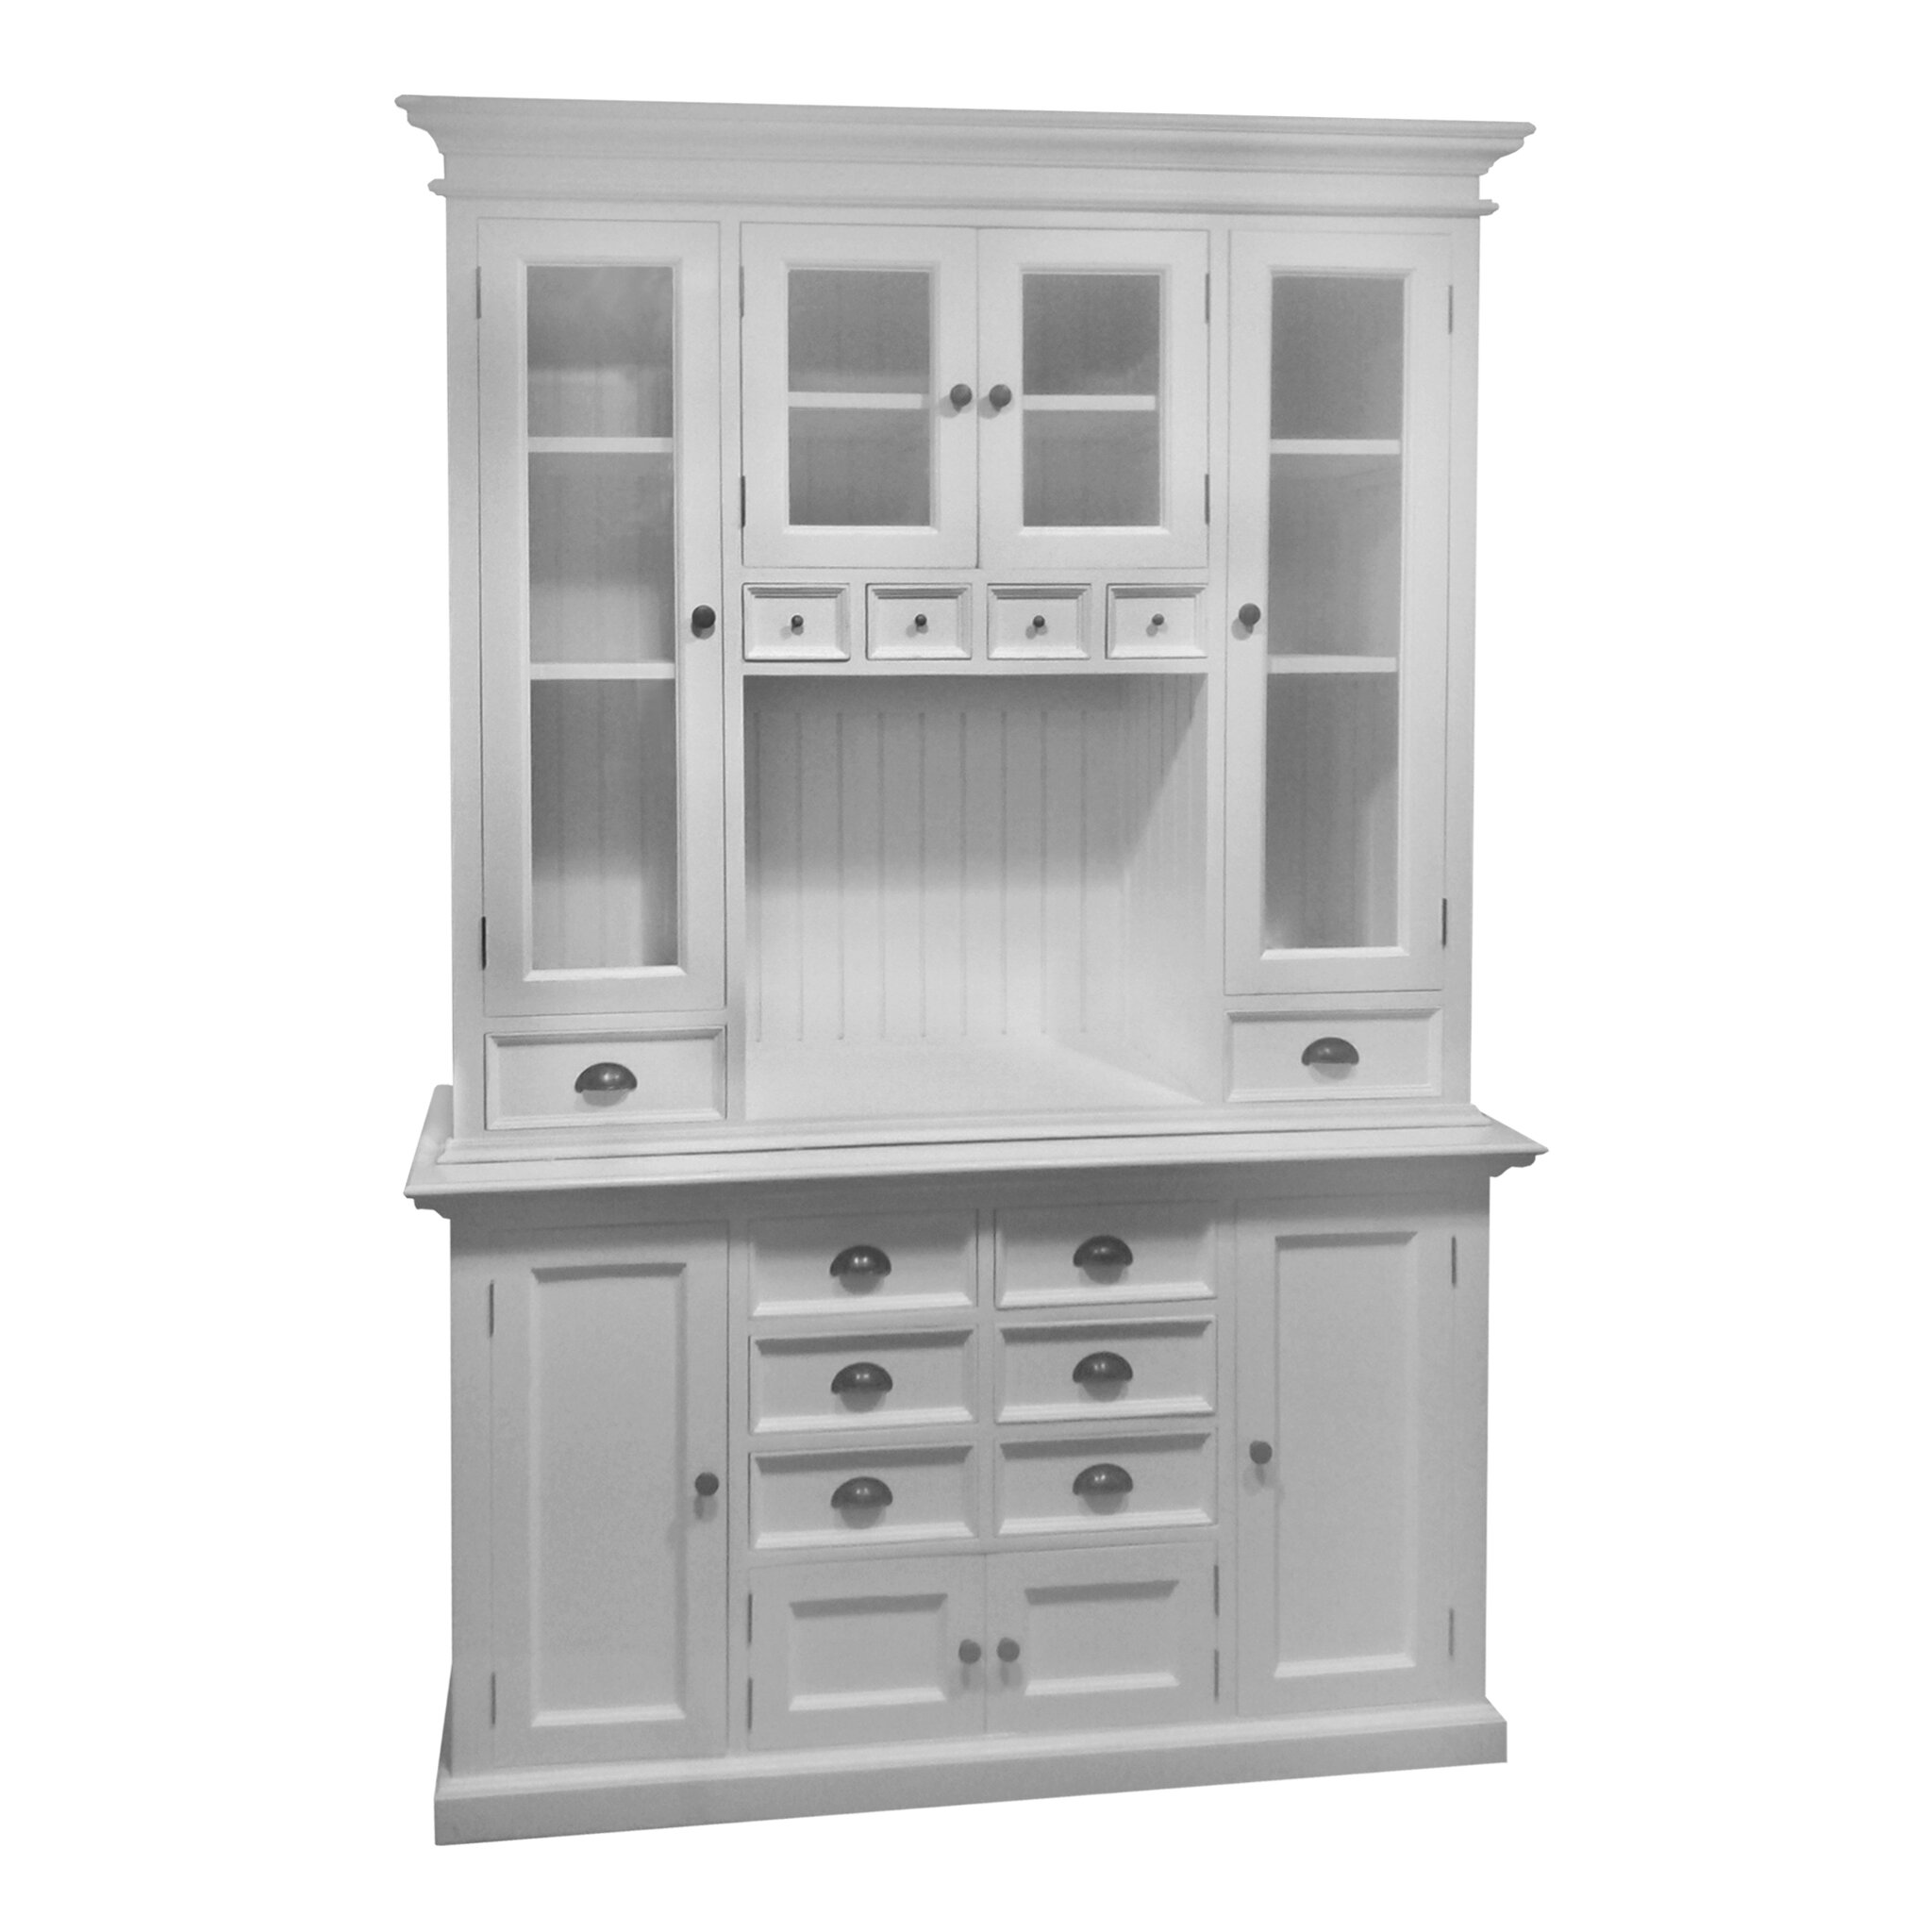 NovaSolo Halifax Kitchen China Cabinet & Reviews